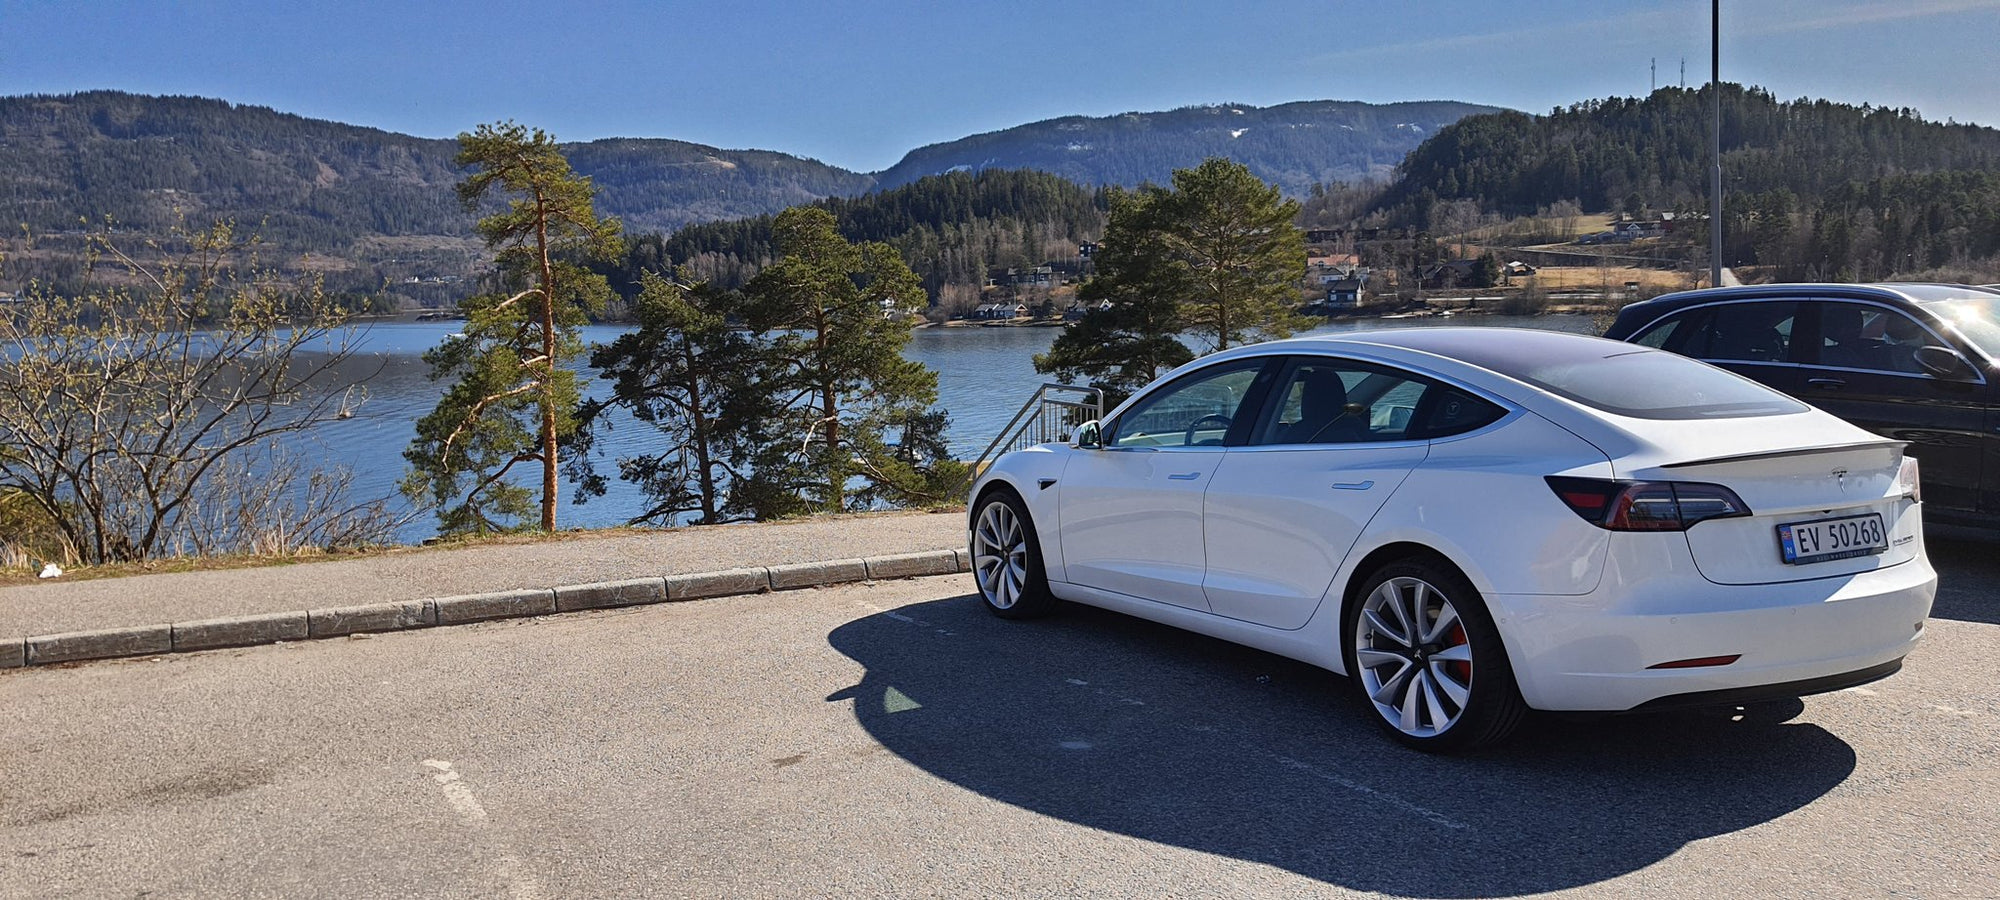 Tesla Has Highest Consumer Loyalty vs Other Car Brands in Norway